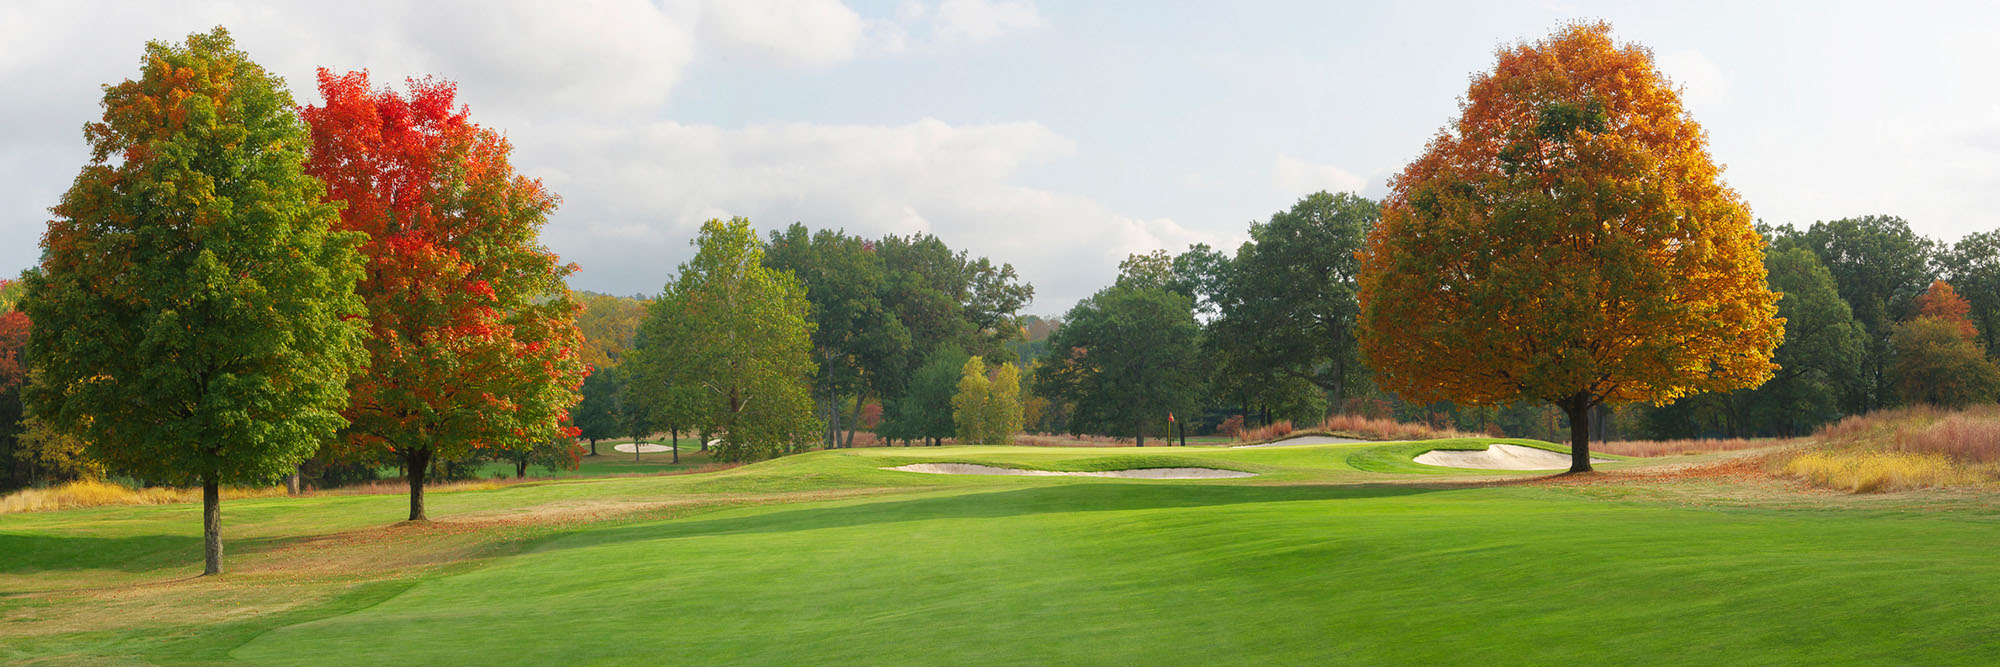 Golf Course Image - The Tuxedo Club No.10